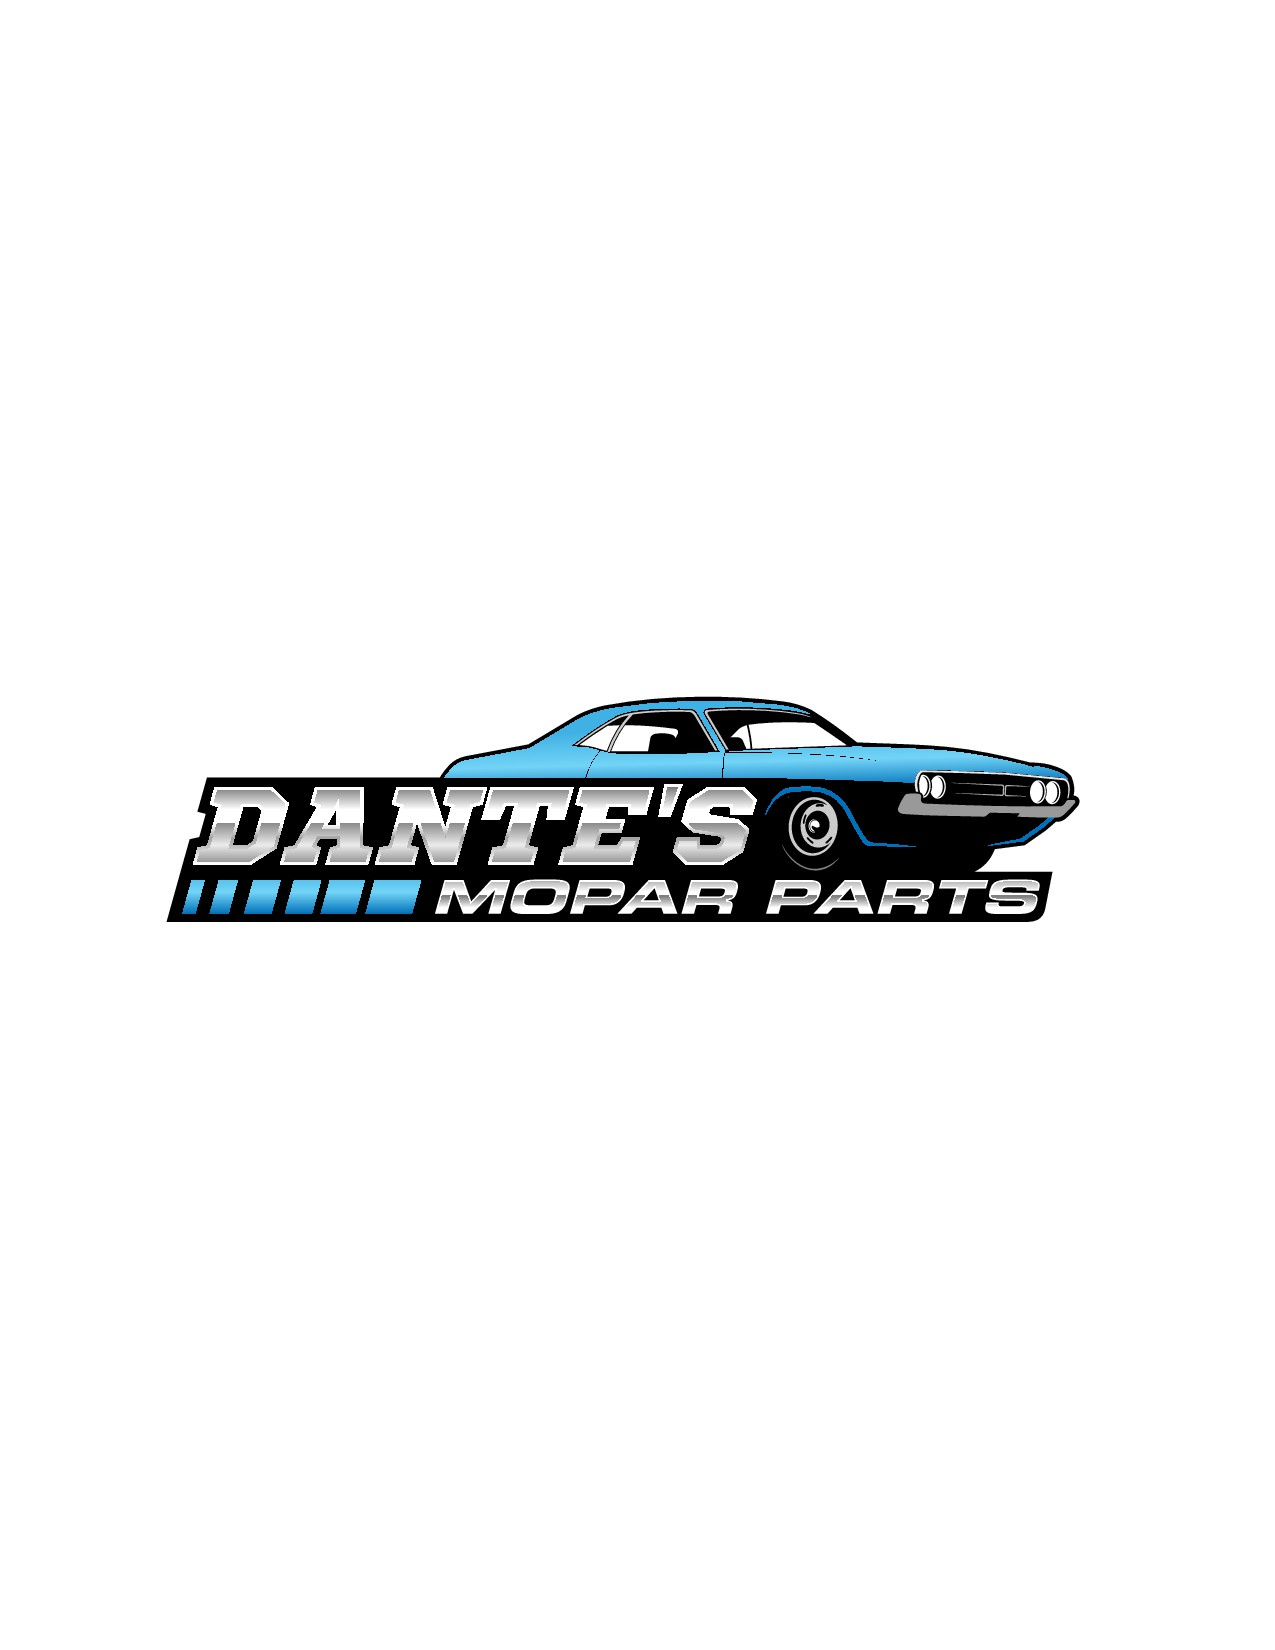 Create a sleek new logo for Dante's Mopar Parts!